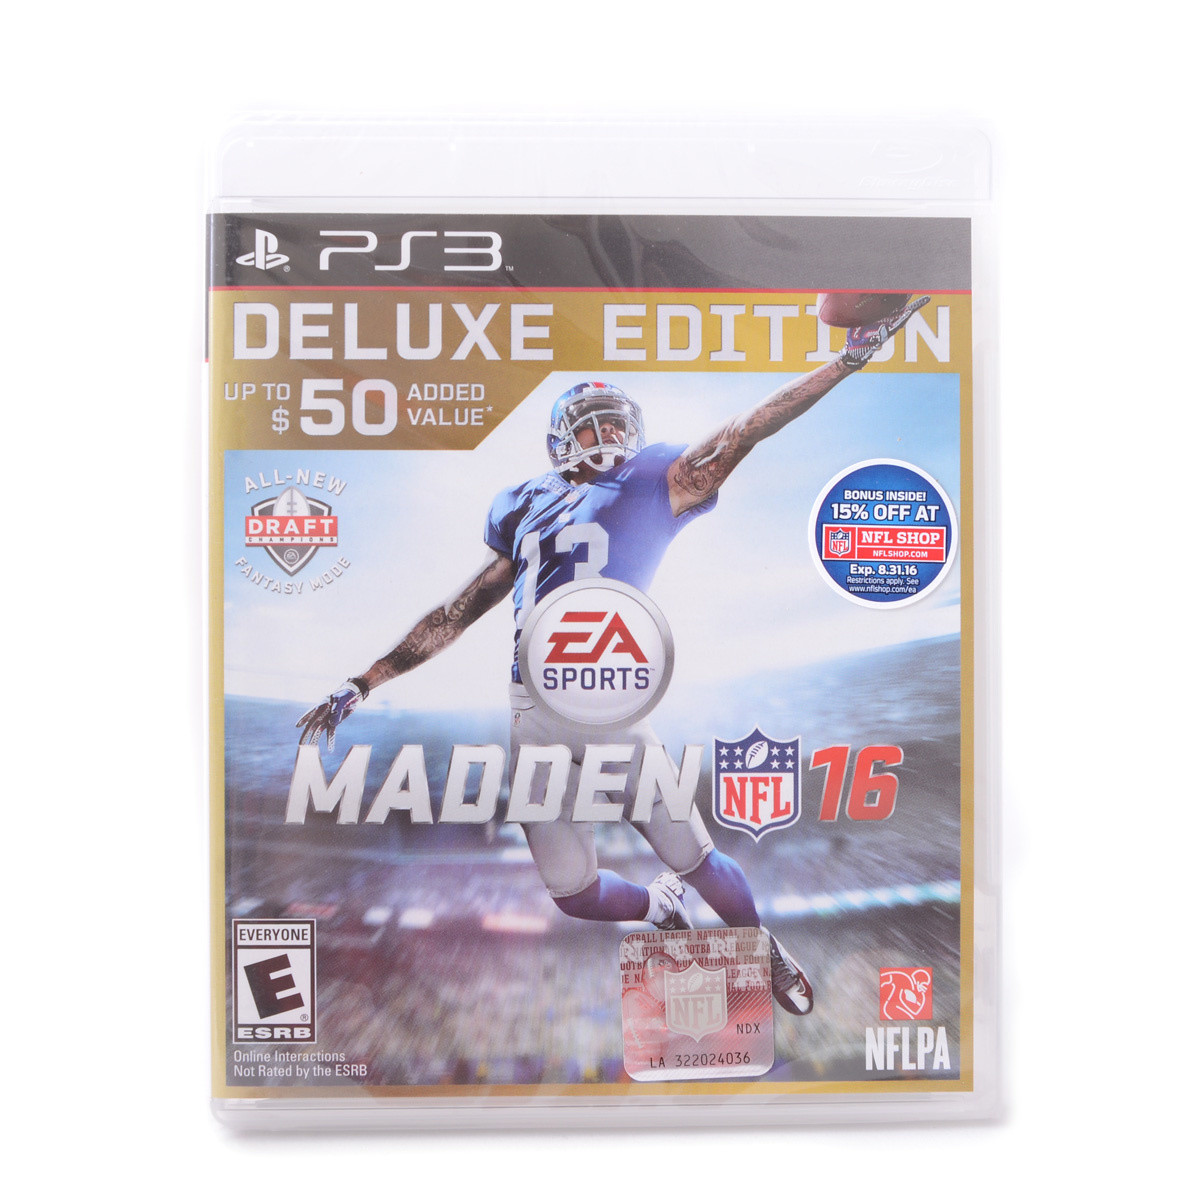 Edition For Ps3 Madden Nfl 16 Deluxe Edition Ps3